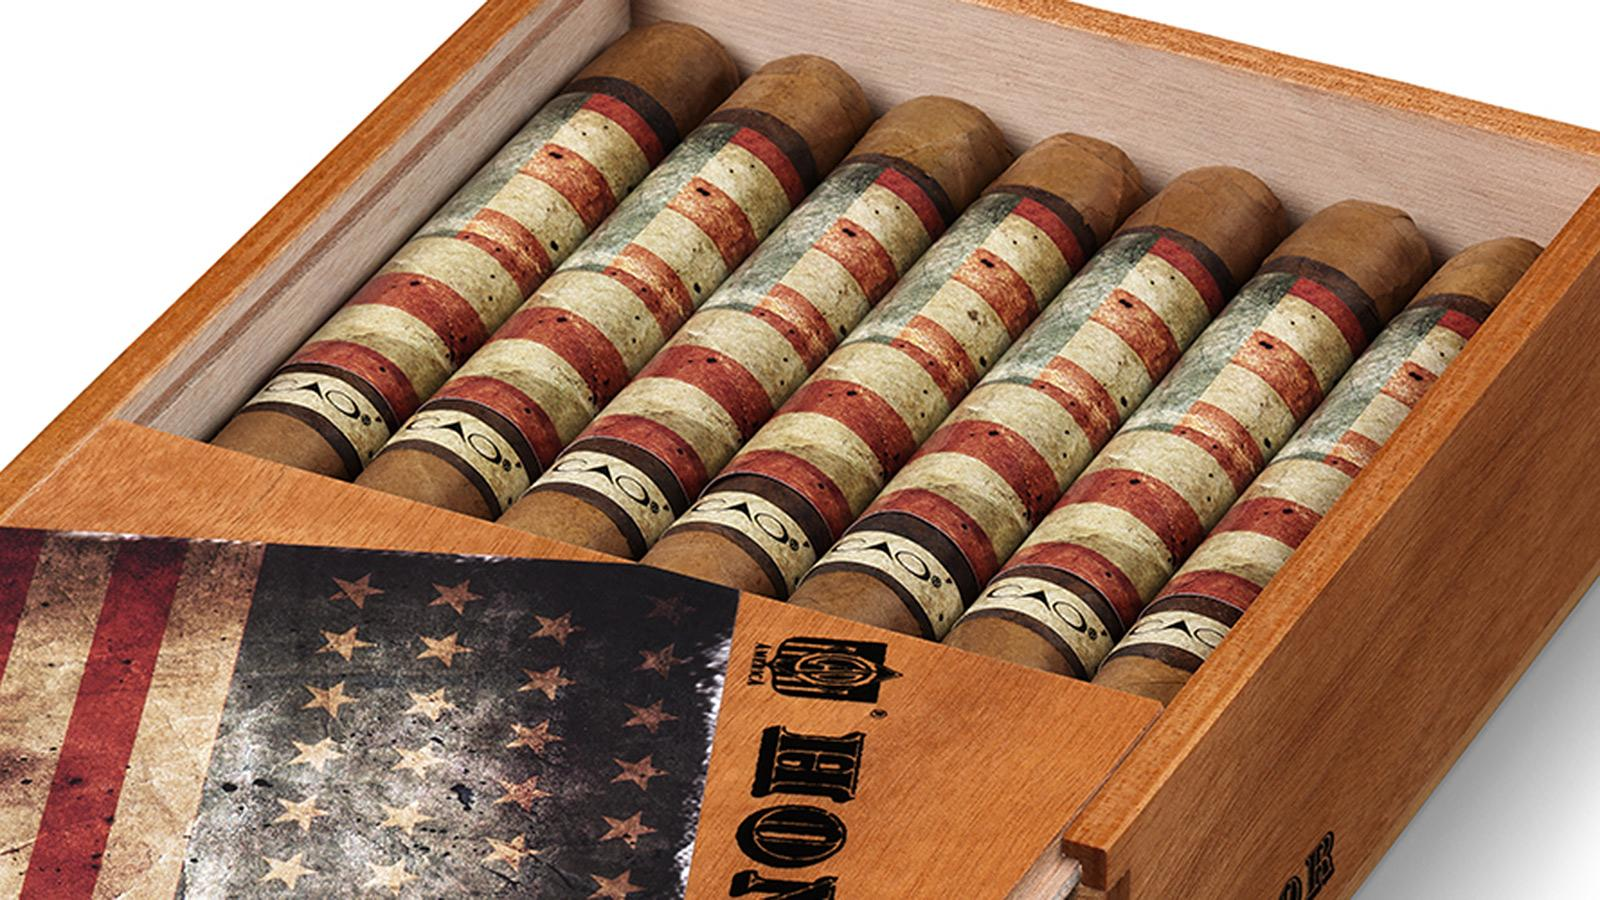 CAO Cigar To Benefit Wounded Soldiers